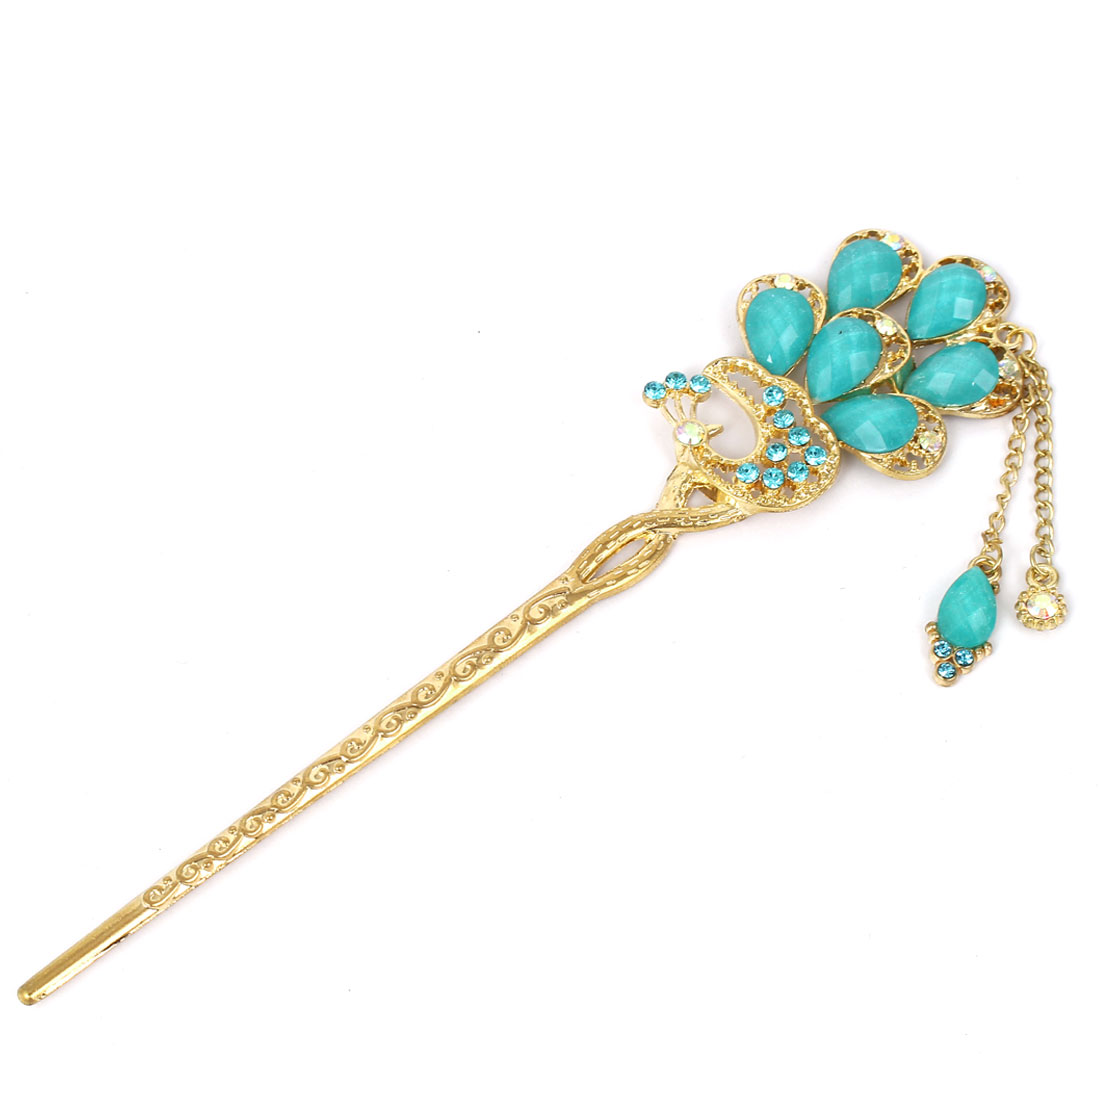 Women Faux Rhinestone Decor Peacock Shaped Hairpin Hair Clasp Stick Gold Tone Green